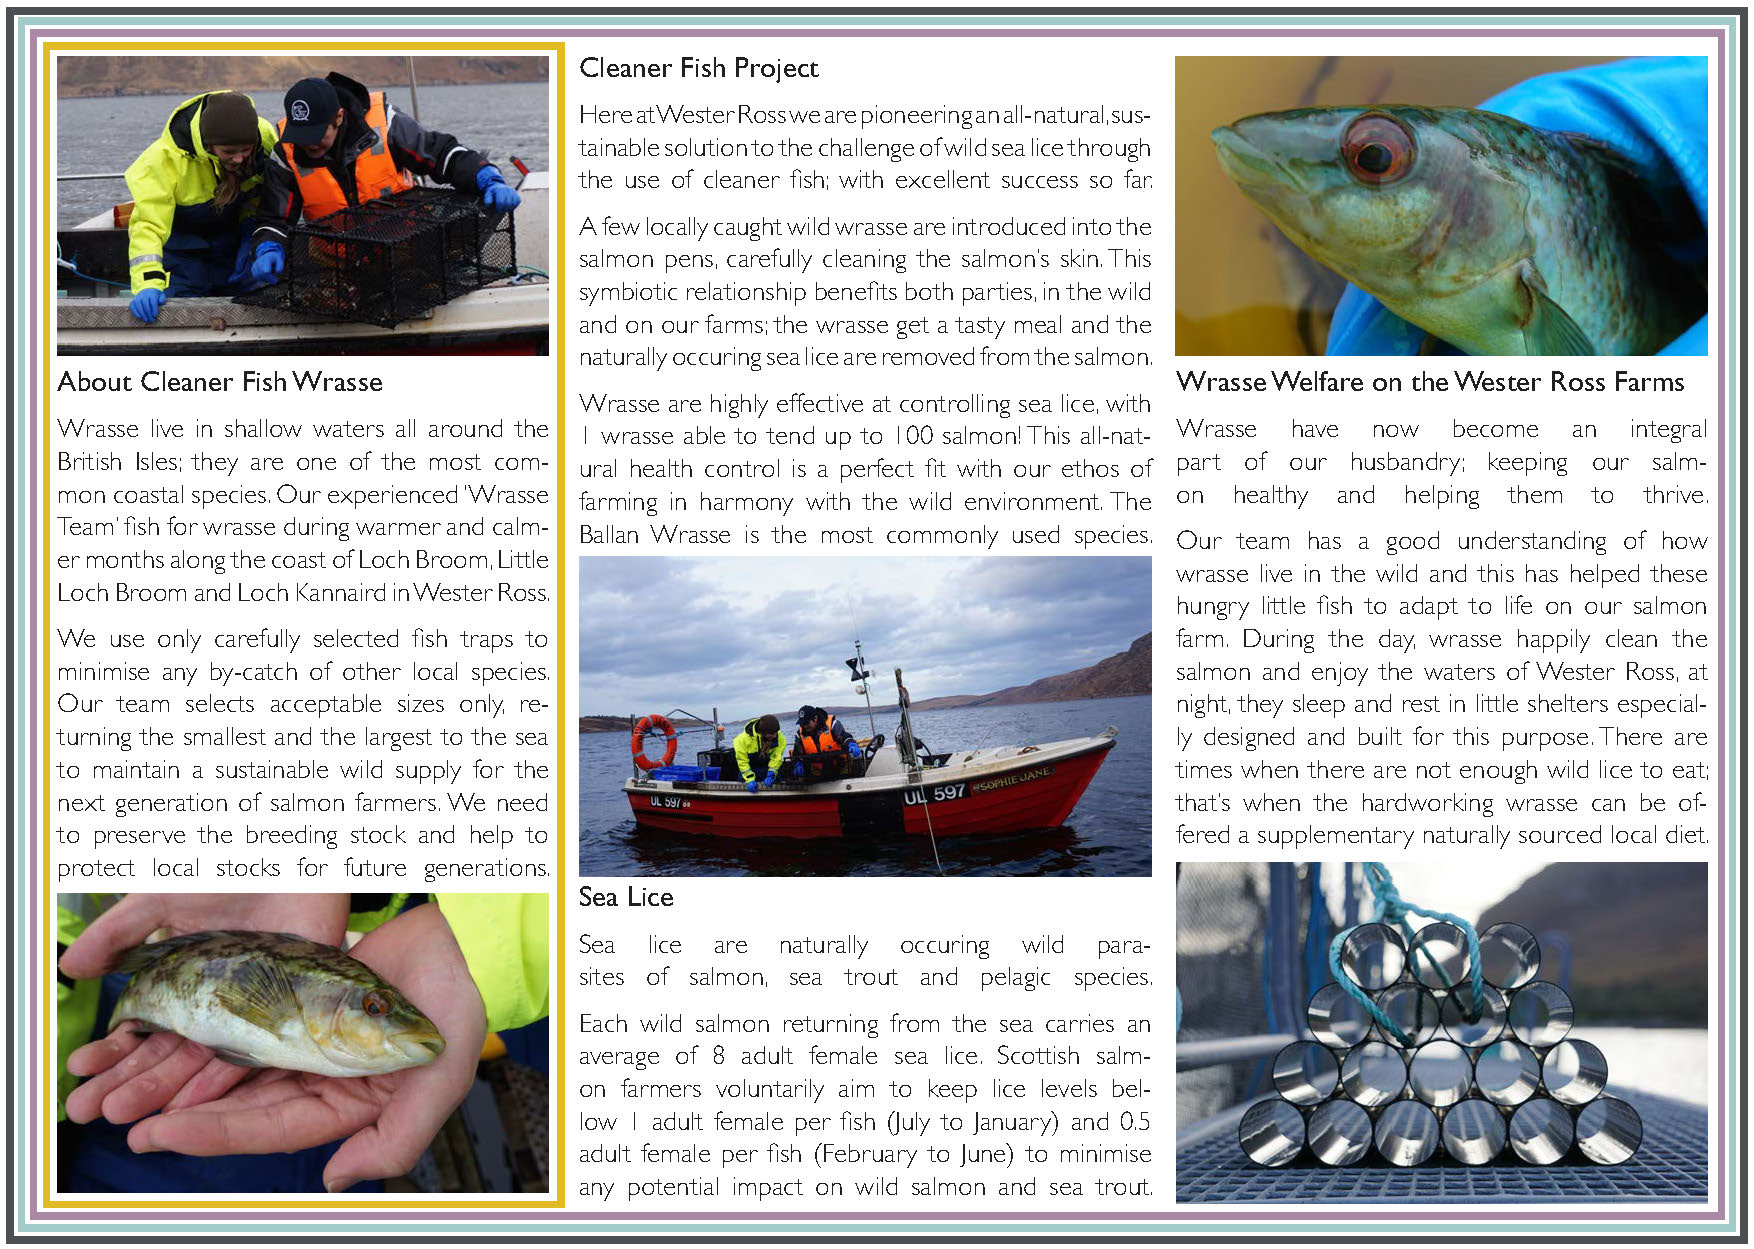 wrasse leaflet 2018 UK final downsized_Page_2.jpg